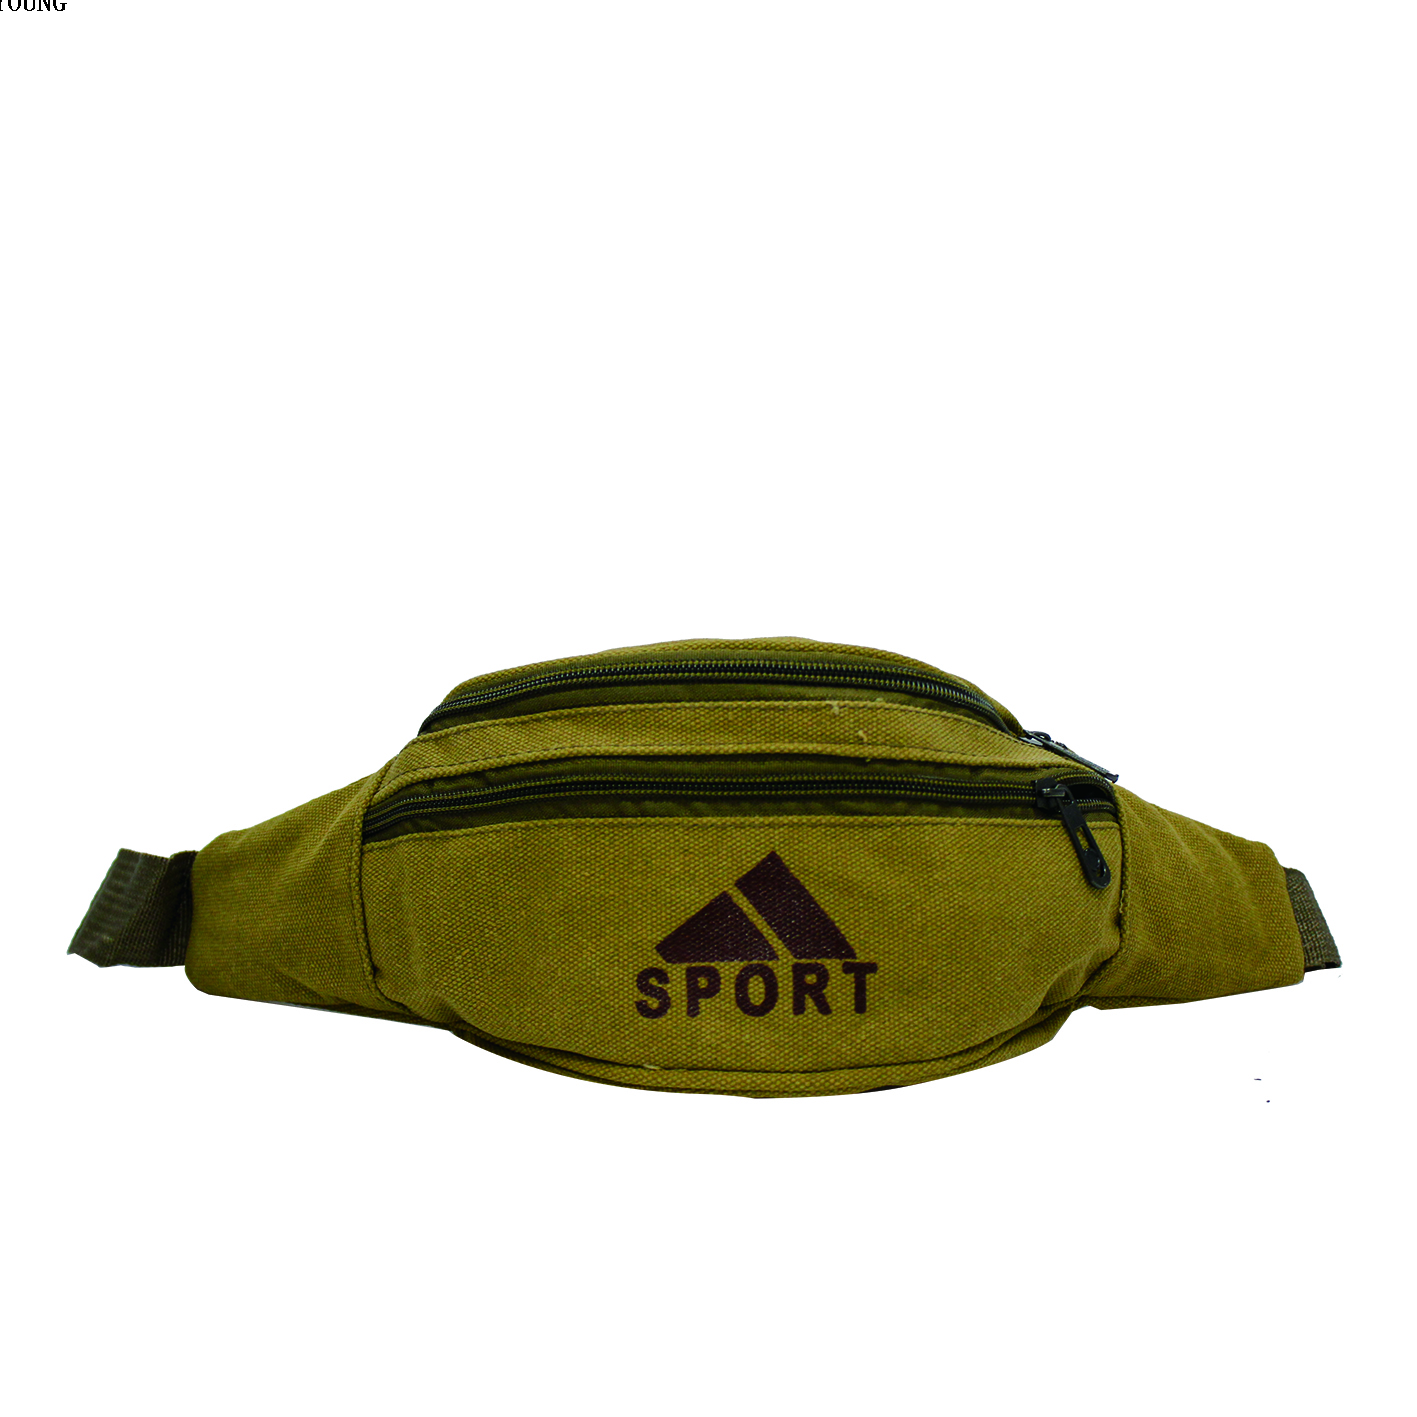 Adult Sport Canvas Two Compartment Waist Bag HY-O004